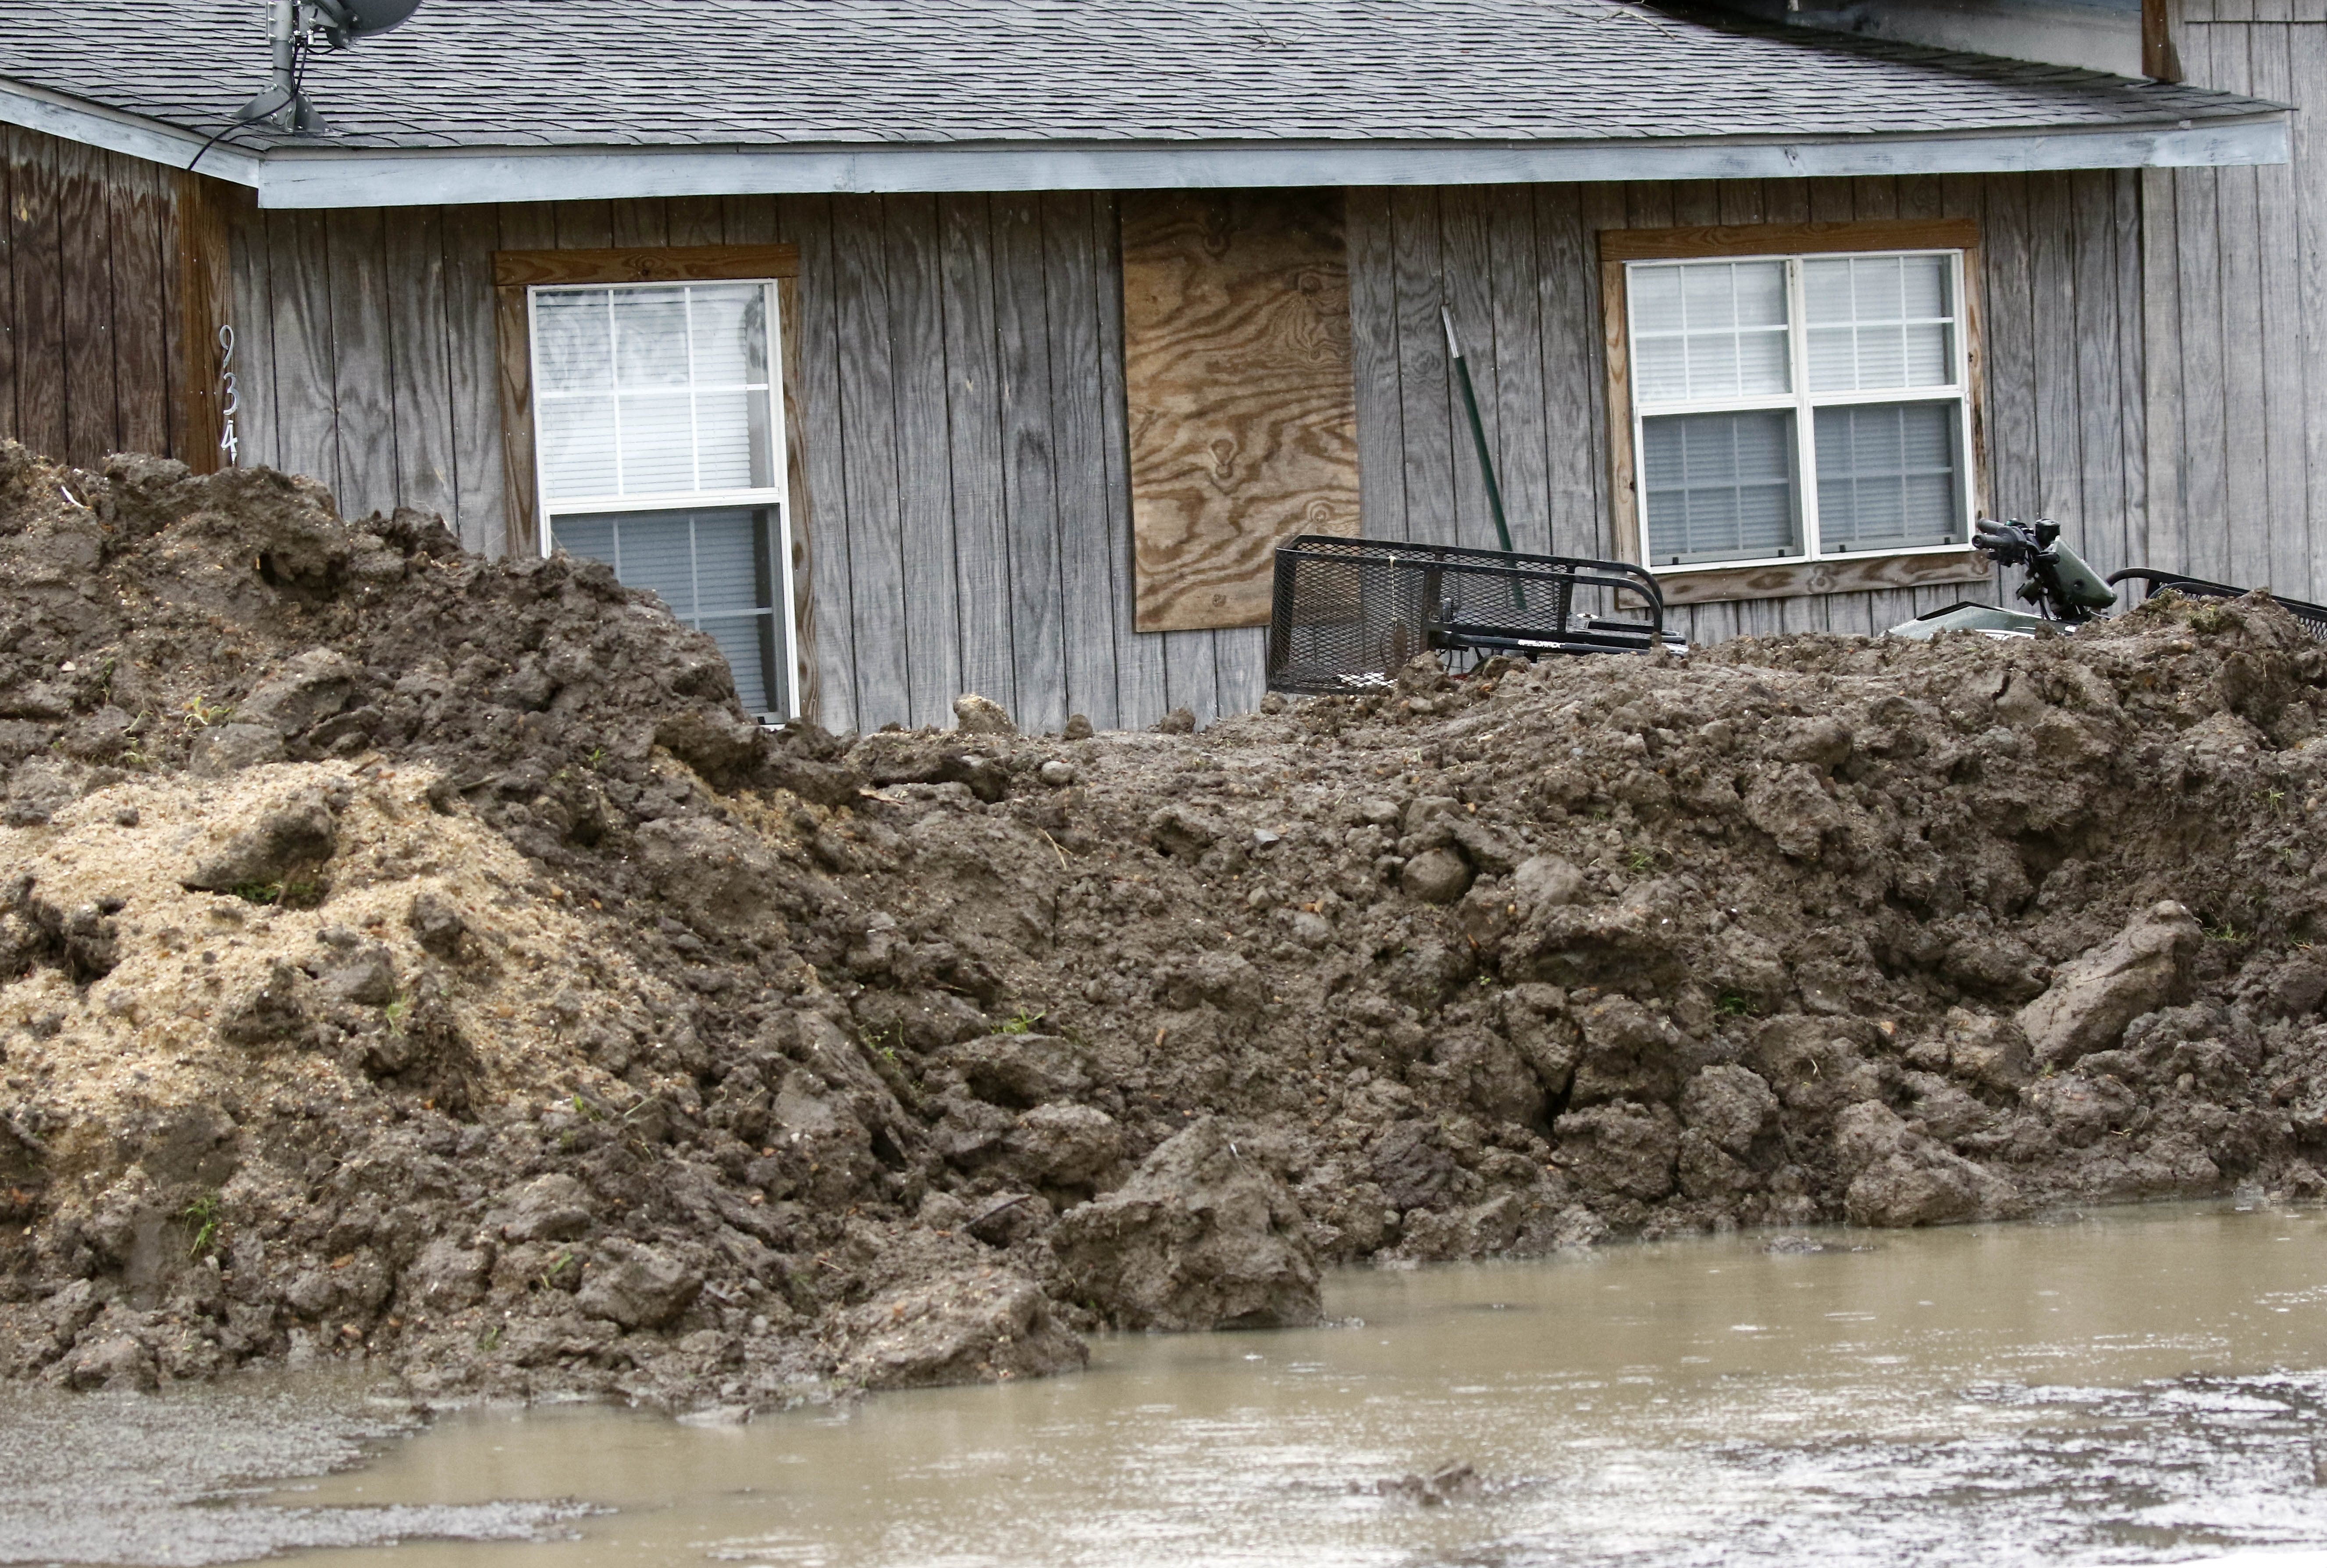 This March 11, 2019 photo shows a makeshift levee built by a resident in Rolling Fork, Miss., to protect his home from flood waters. In March 2019, scientists are warning that historic flooding could soon deluge parts of several southern states along the lower Mississippi River, where flood waters could persist for several weeks. (AP Photo/Rogelio V. Solis)